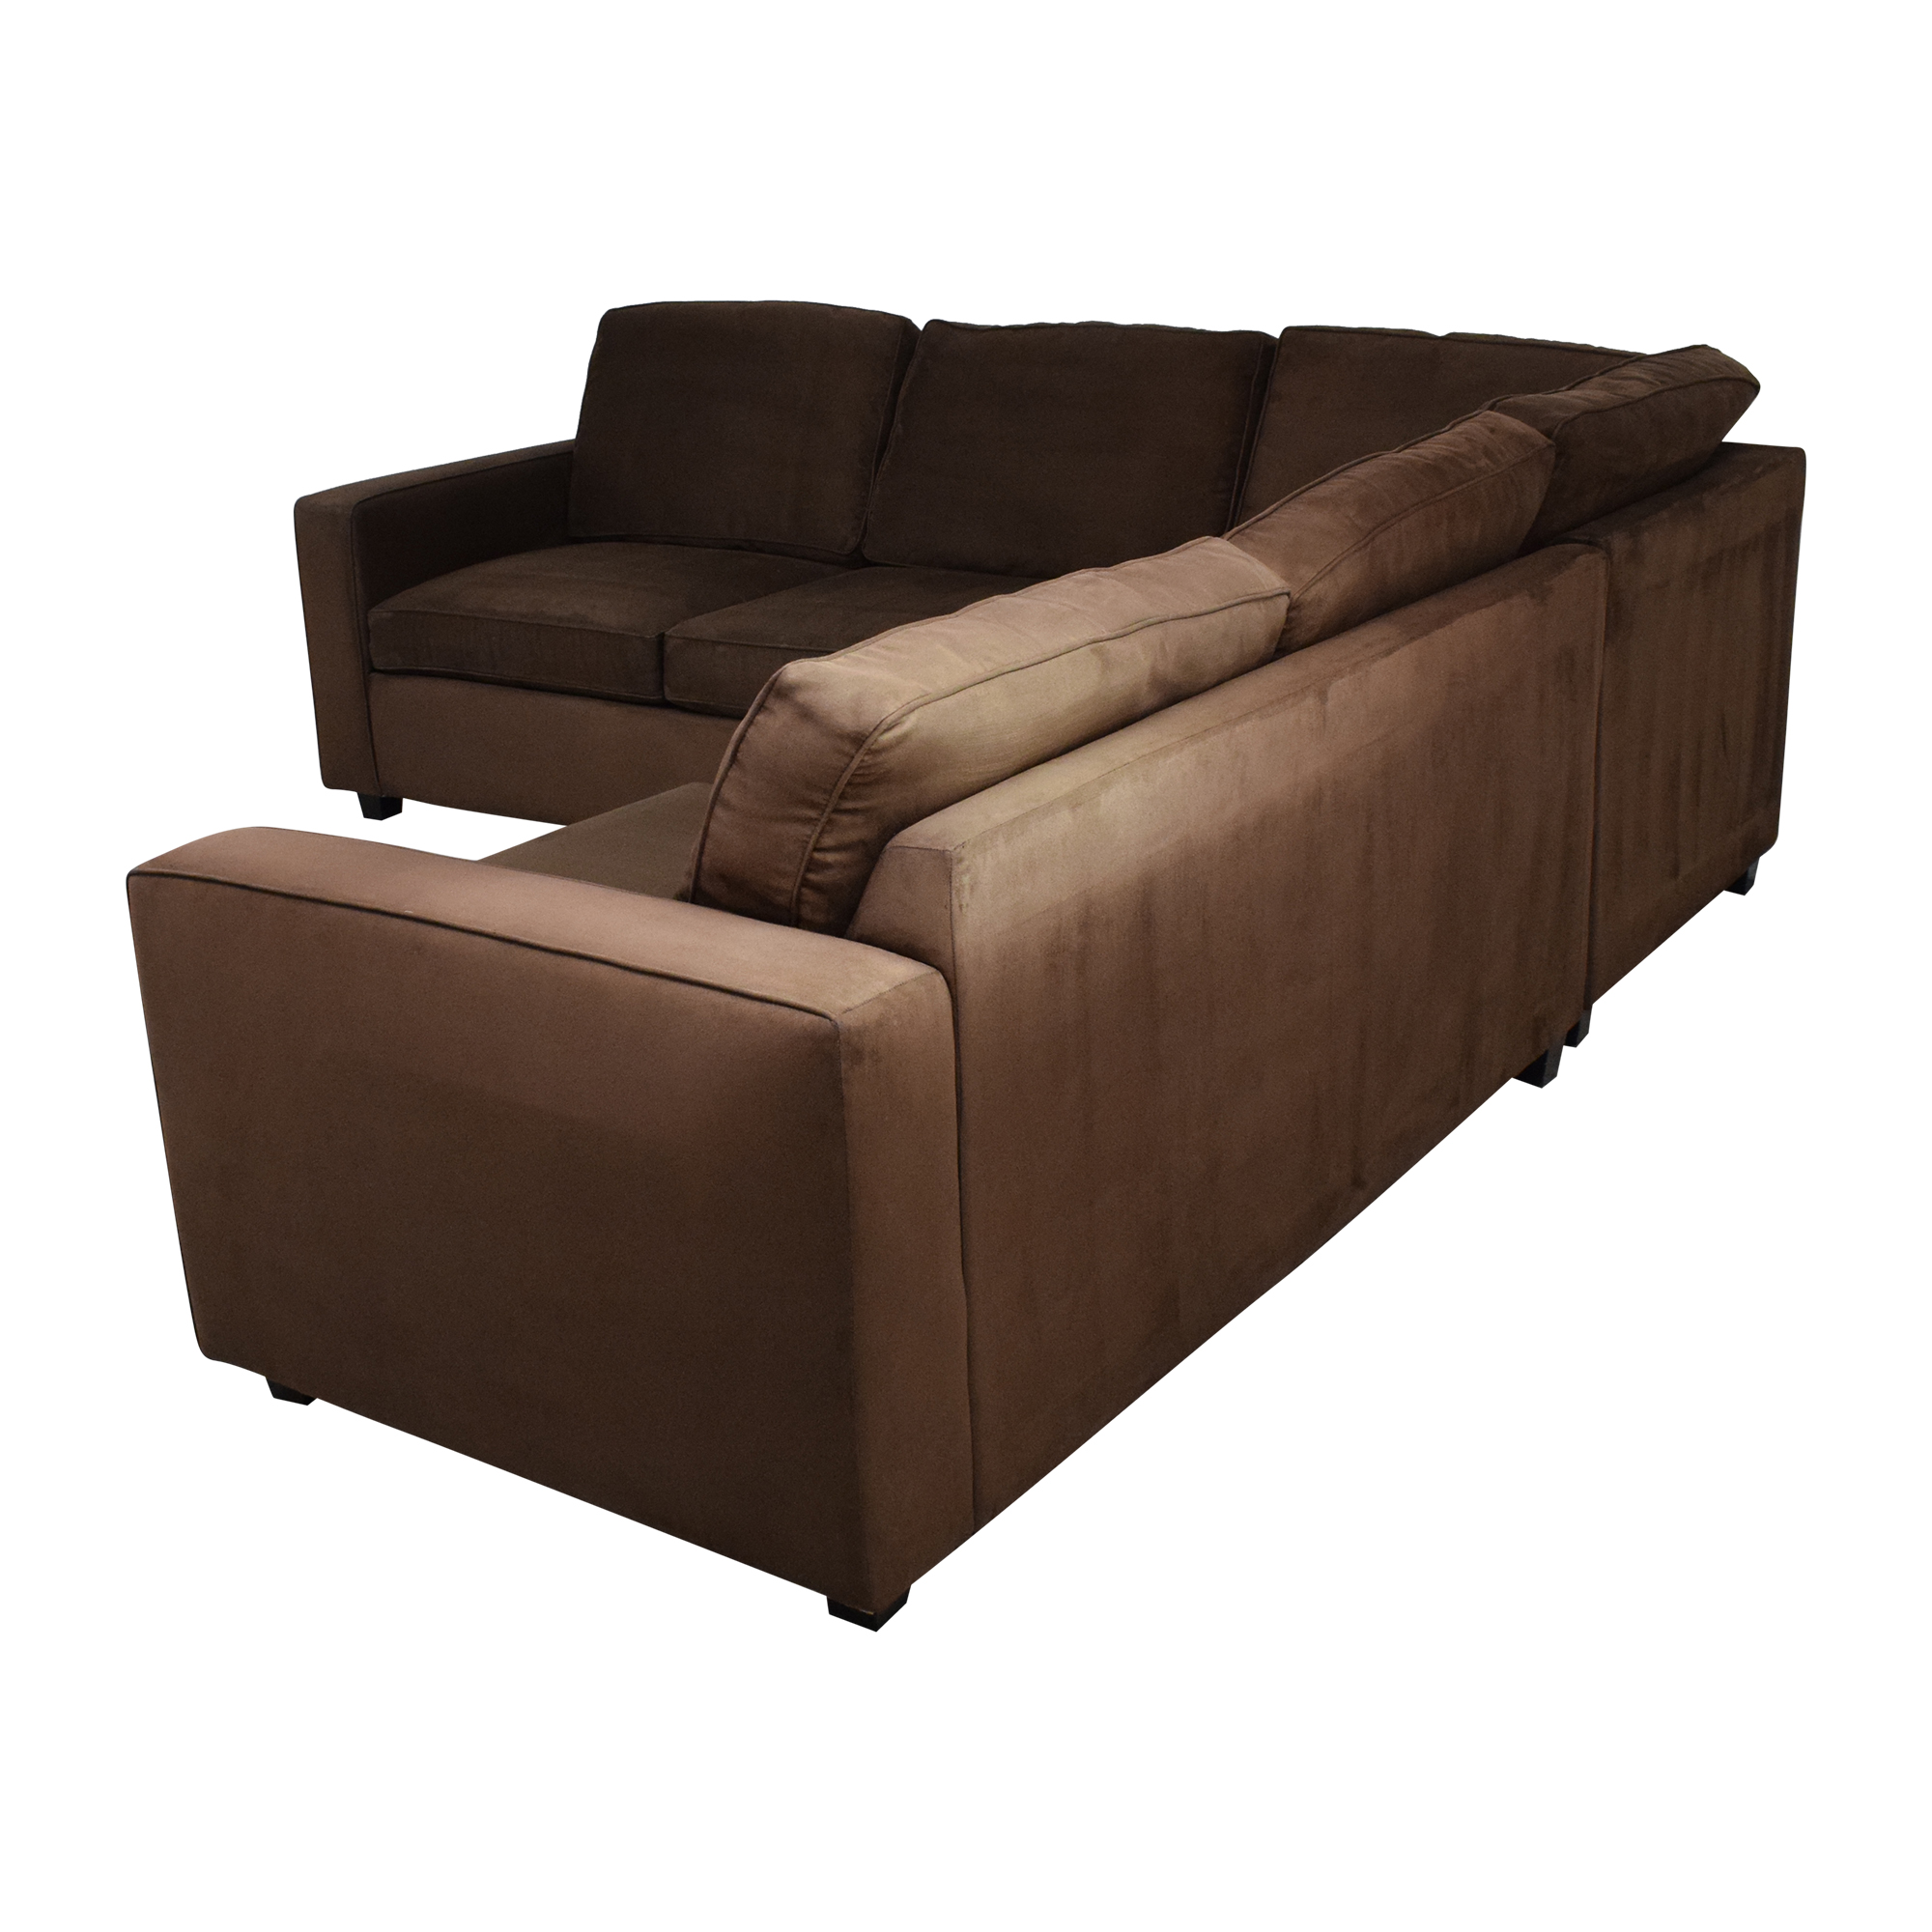 L-Shaped Sleeper Sofa on sale